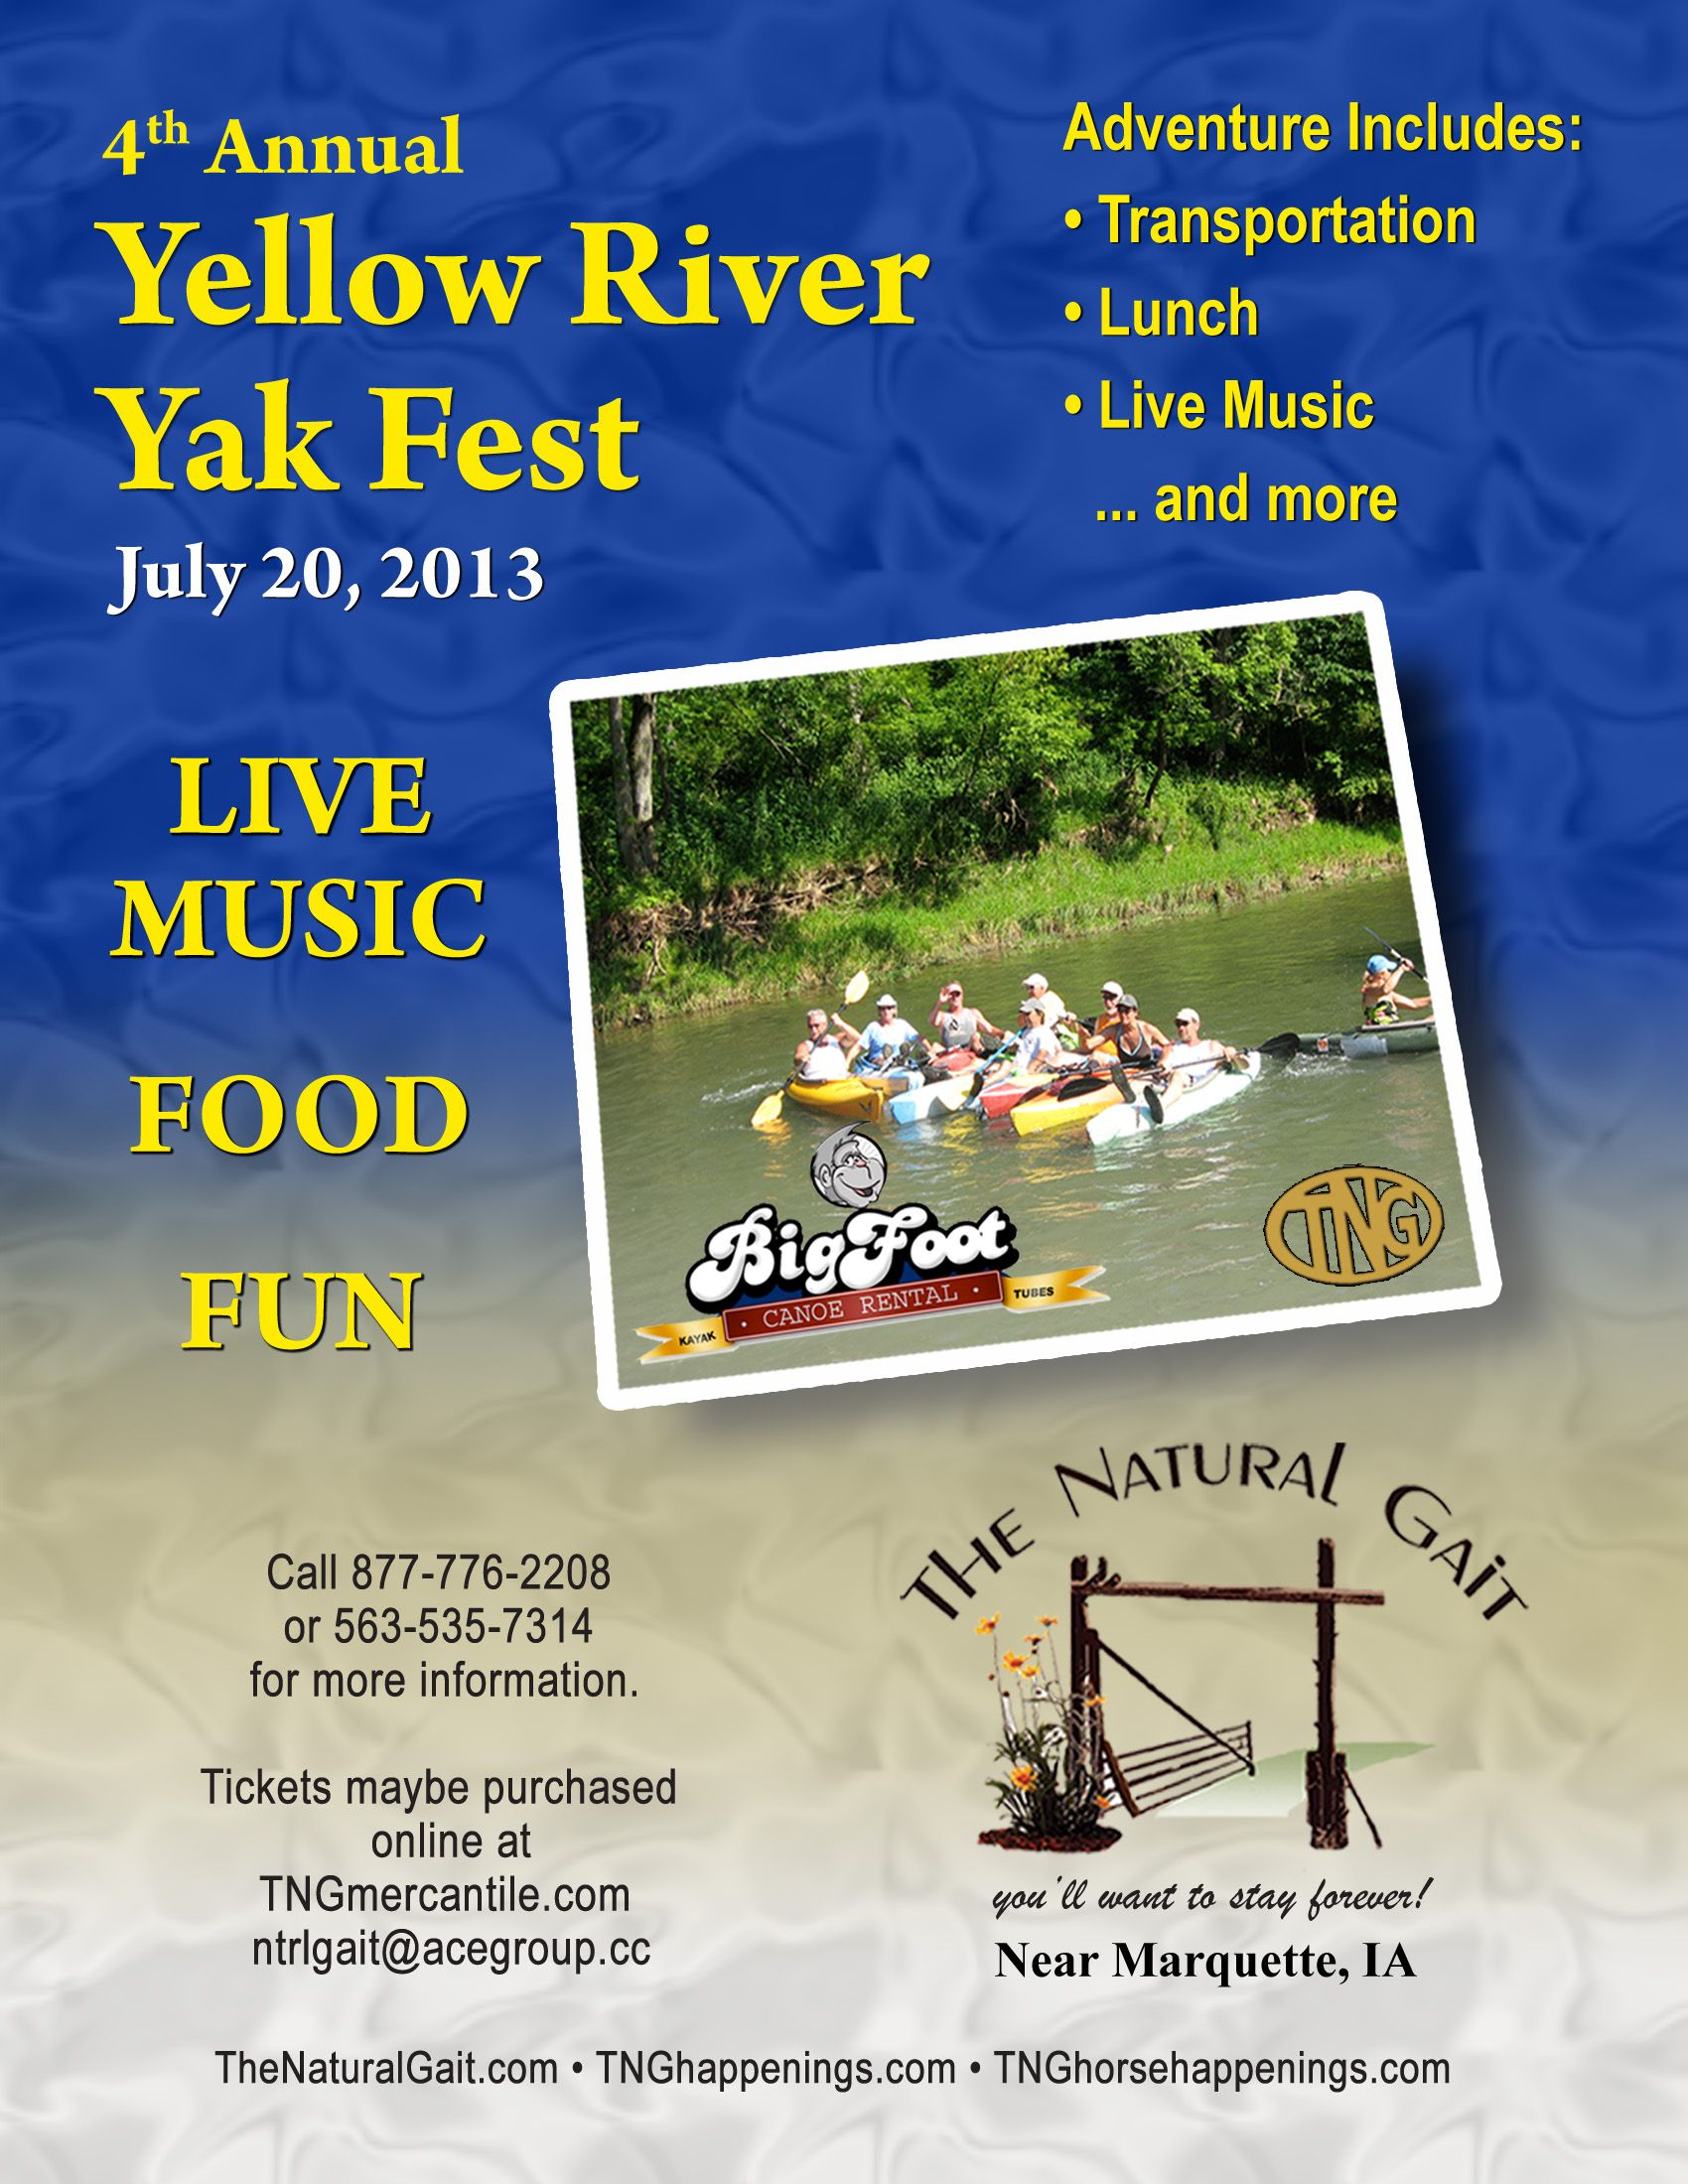 Join the fun at The Natural Gait's 4th Annual Yellow River Yak Fest - kayak on The Yellow River in scenic NE Iowa. Live Music, Food & lots of Fun. Call 877-776-2208 for more info. http://www.thenaturalgait.com